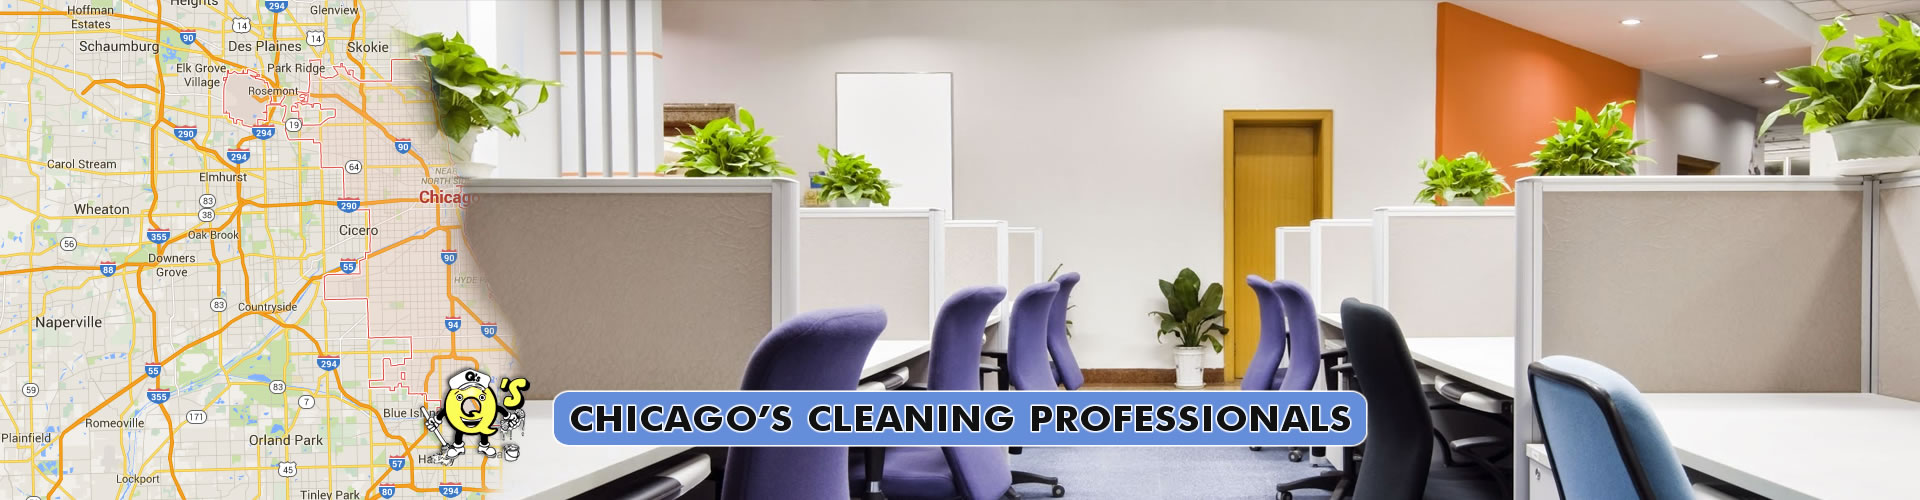 Chicago's Cleaning Professionals